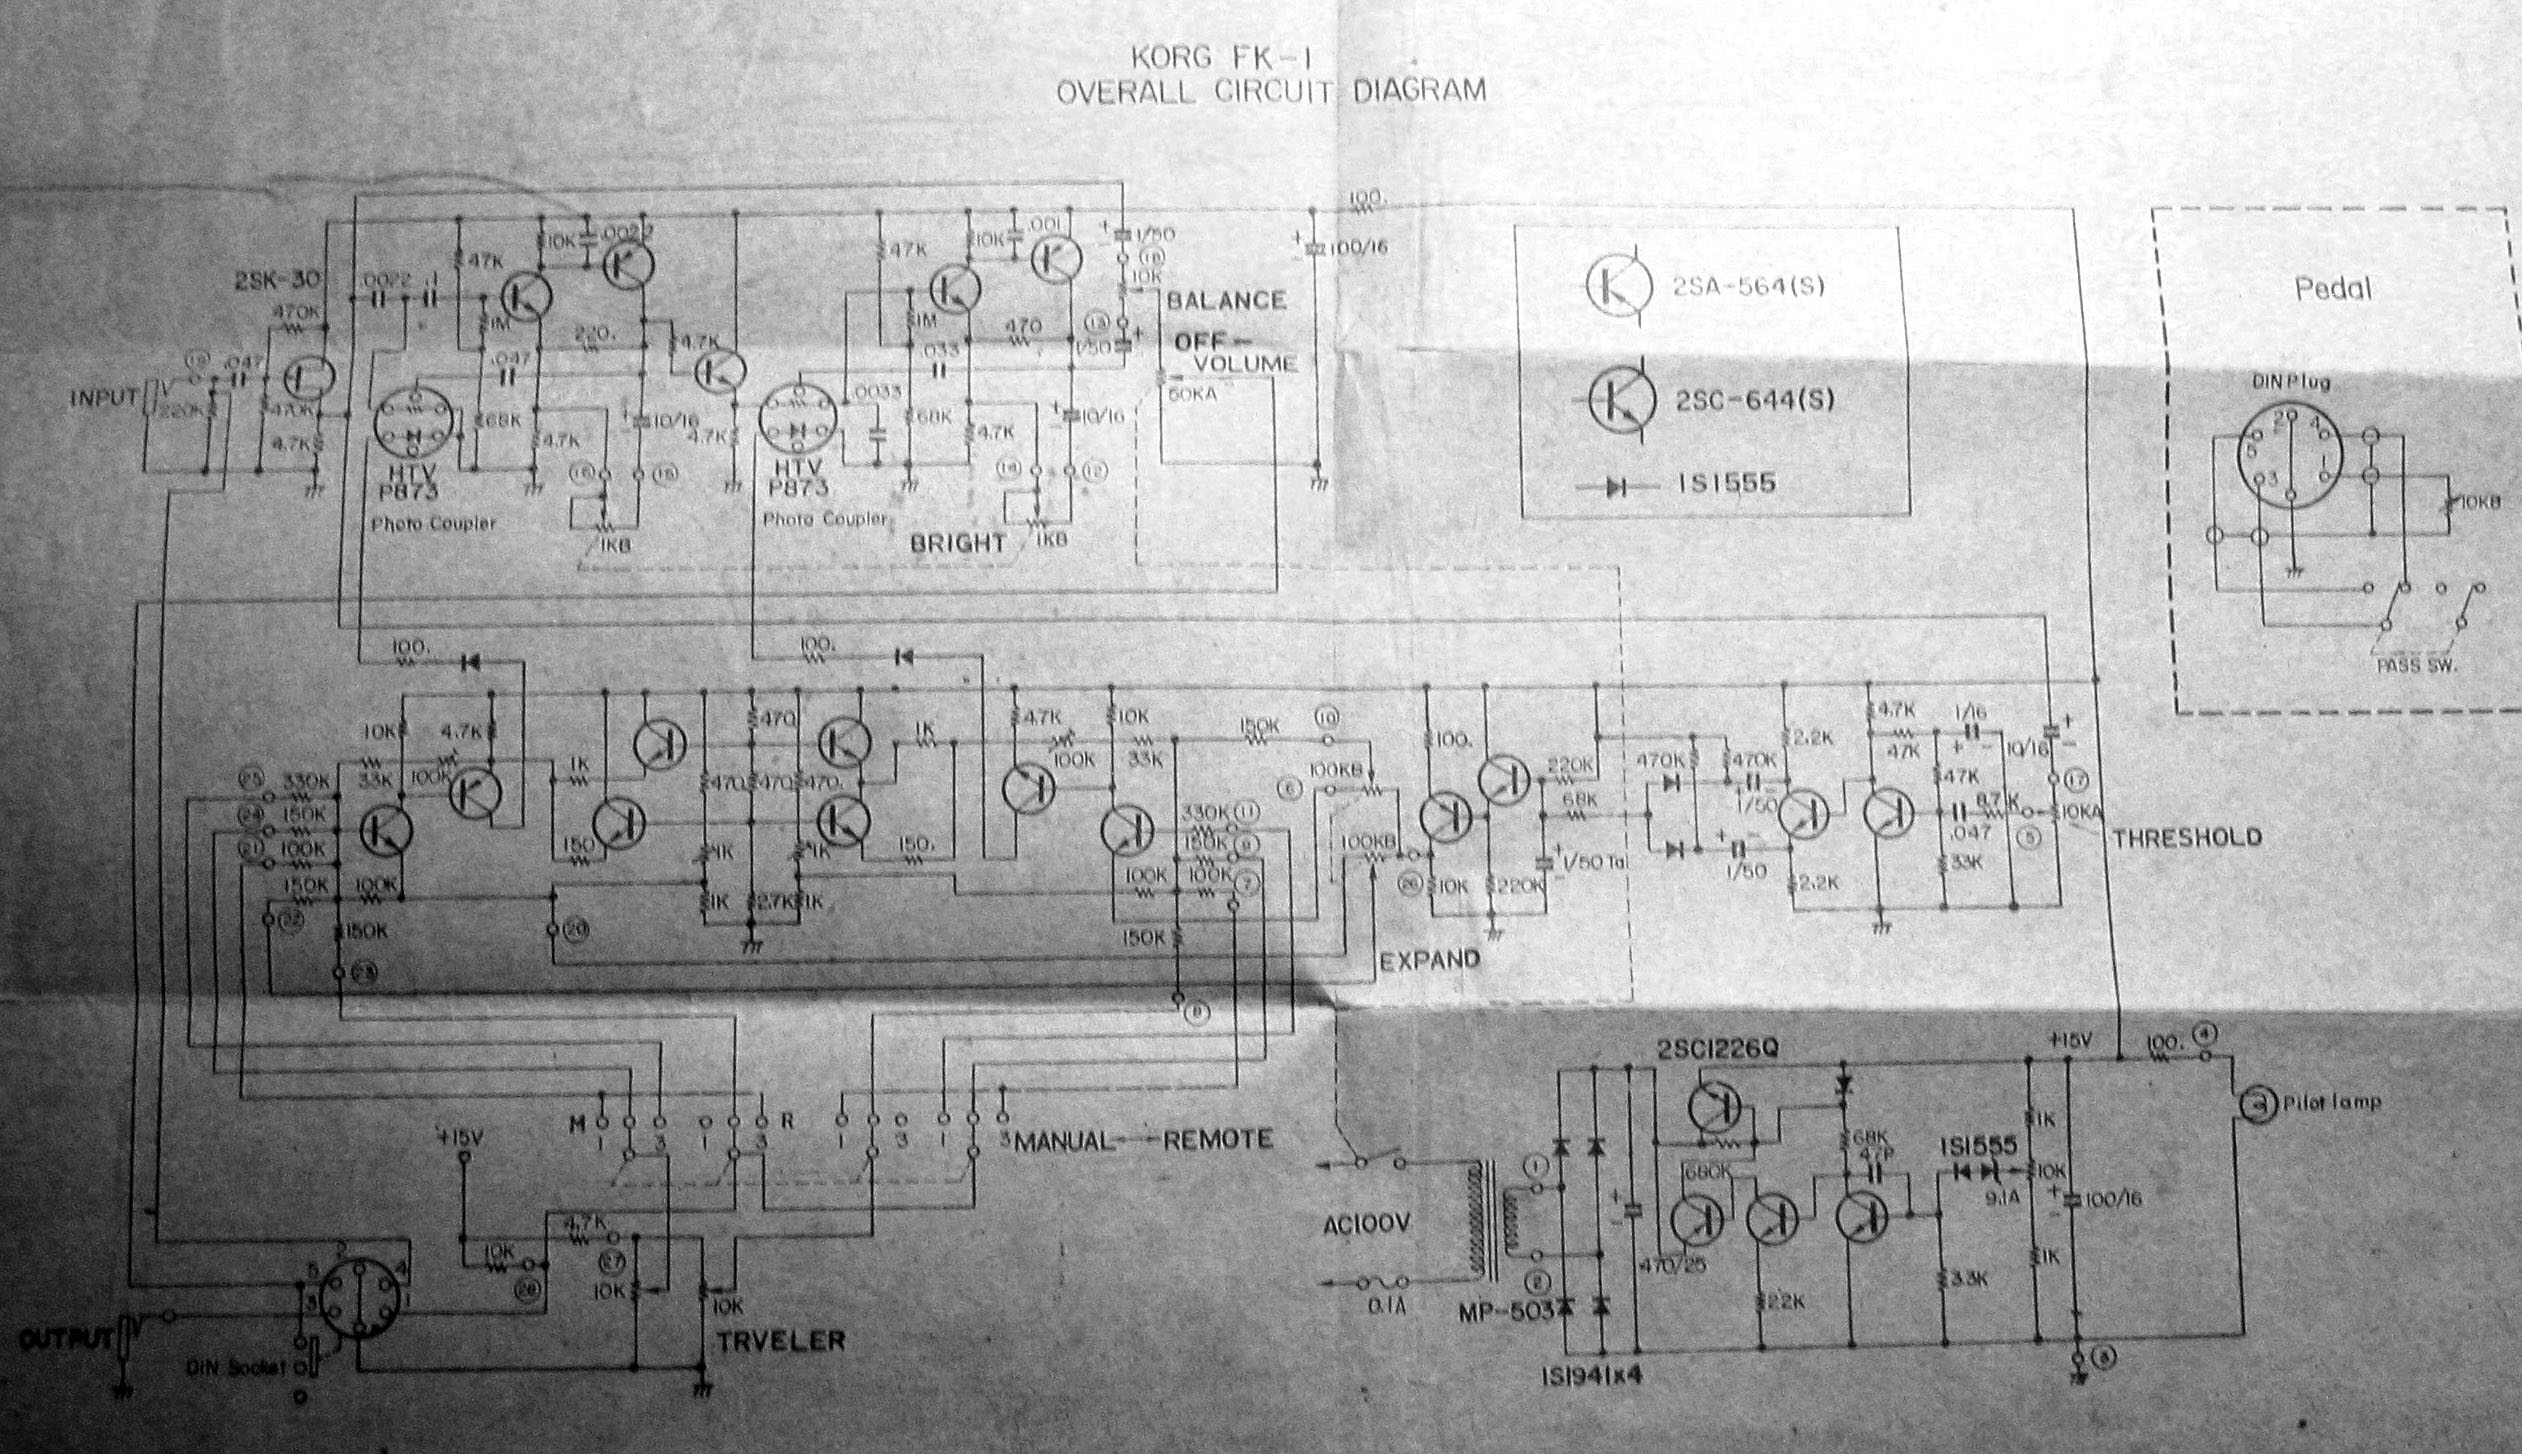 korg wiring diagram electrical drawing wiring diagram u2022 rh asuransiallianz co Simple Wiring Diagrams 3-Way Switch Wiring Diagram